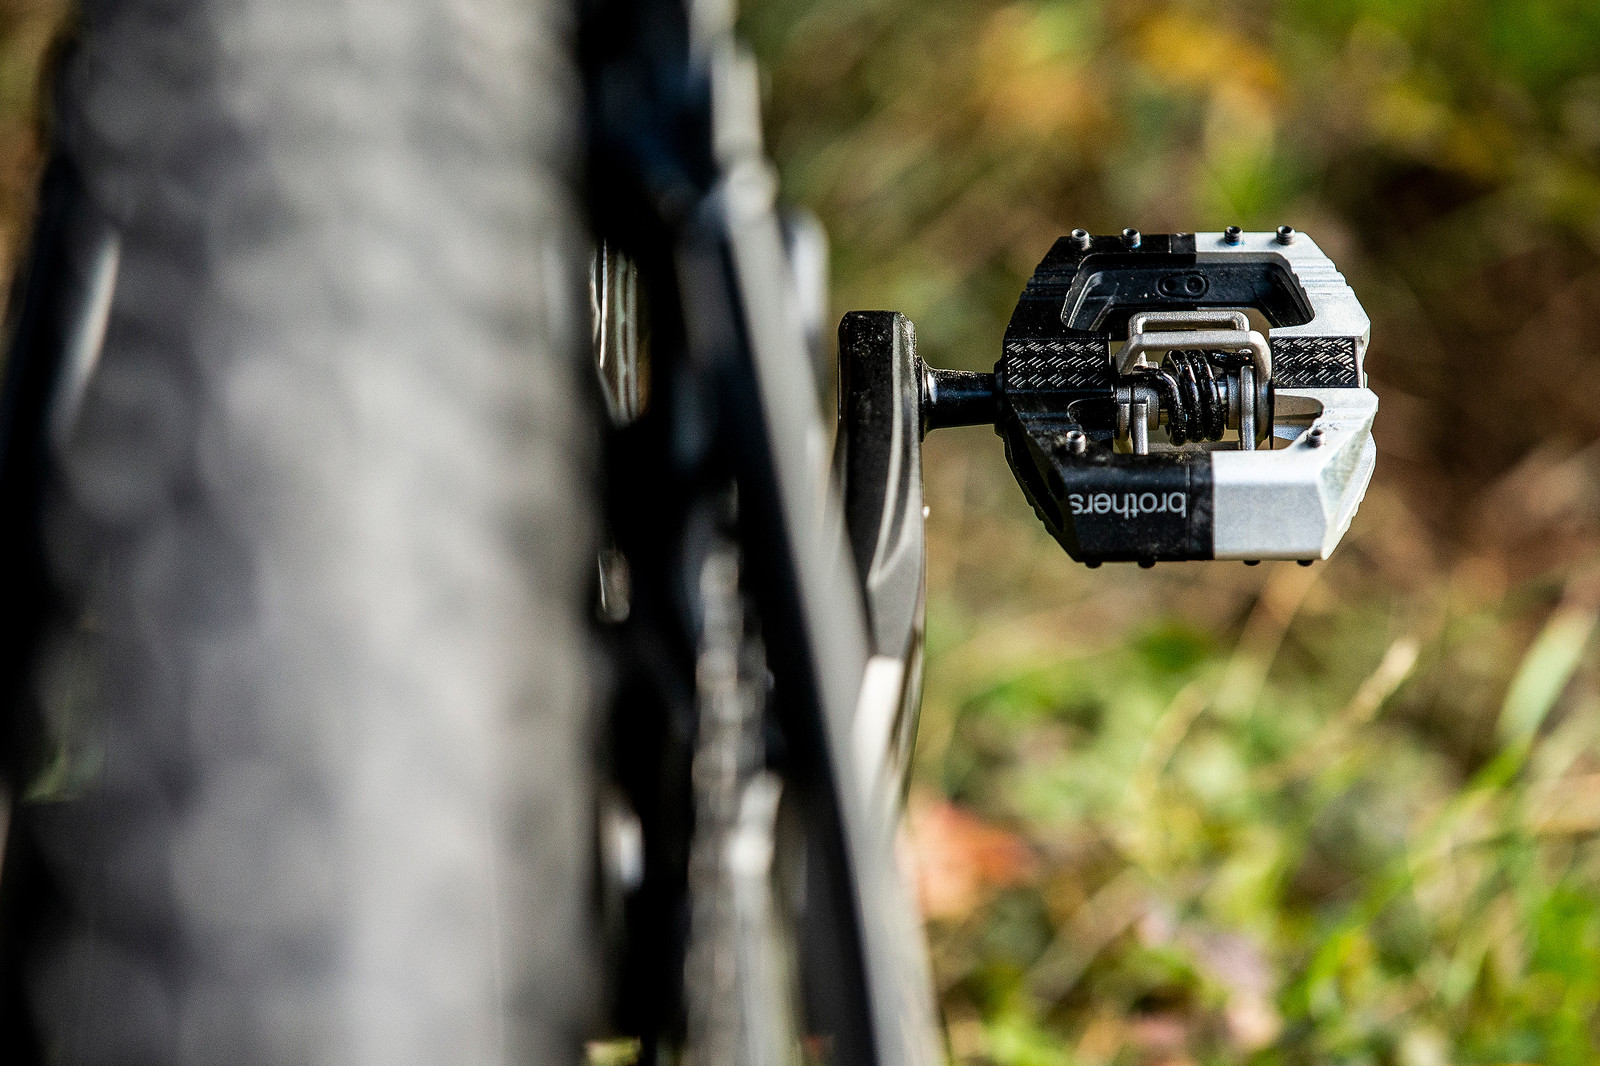 Crankbrothers Mallets - WORLD CHAMPS BIKE - Wyn Masters' GT Fury - Mountain Biking Pictures - Vital MTB